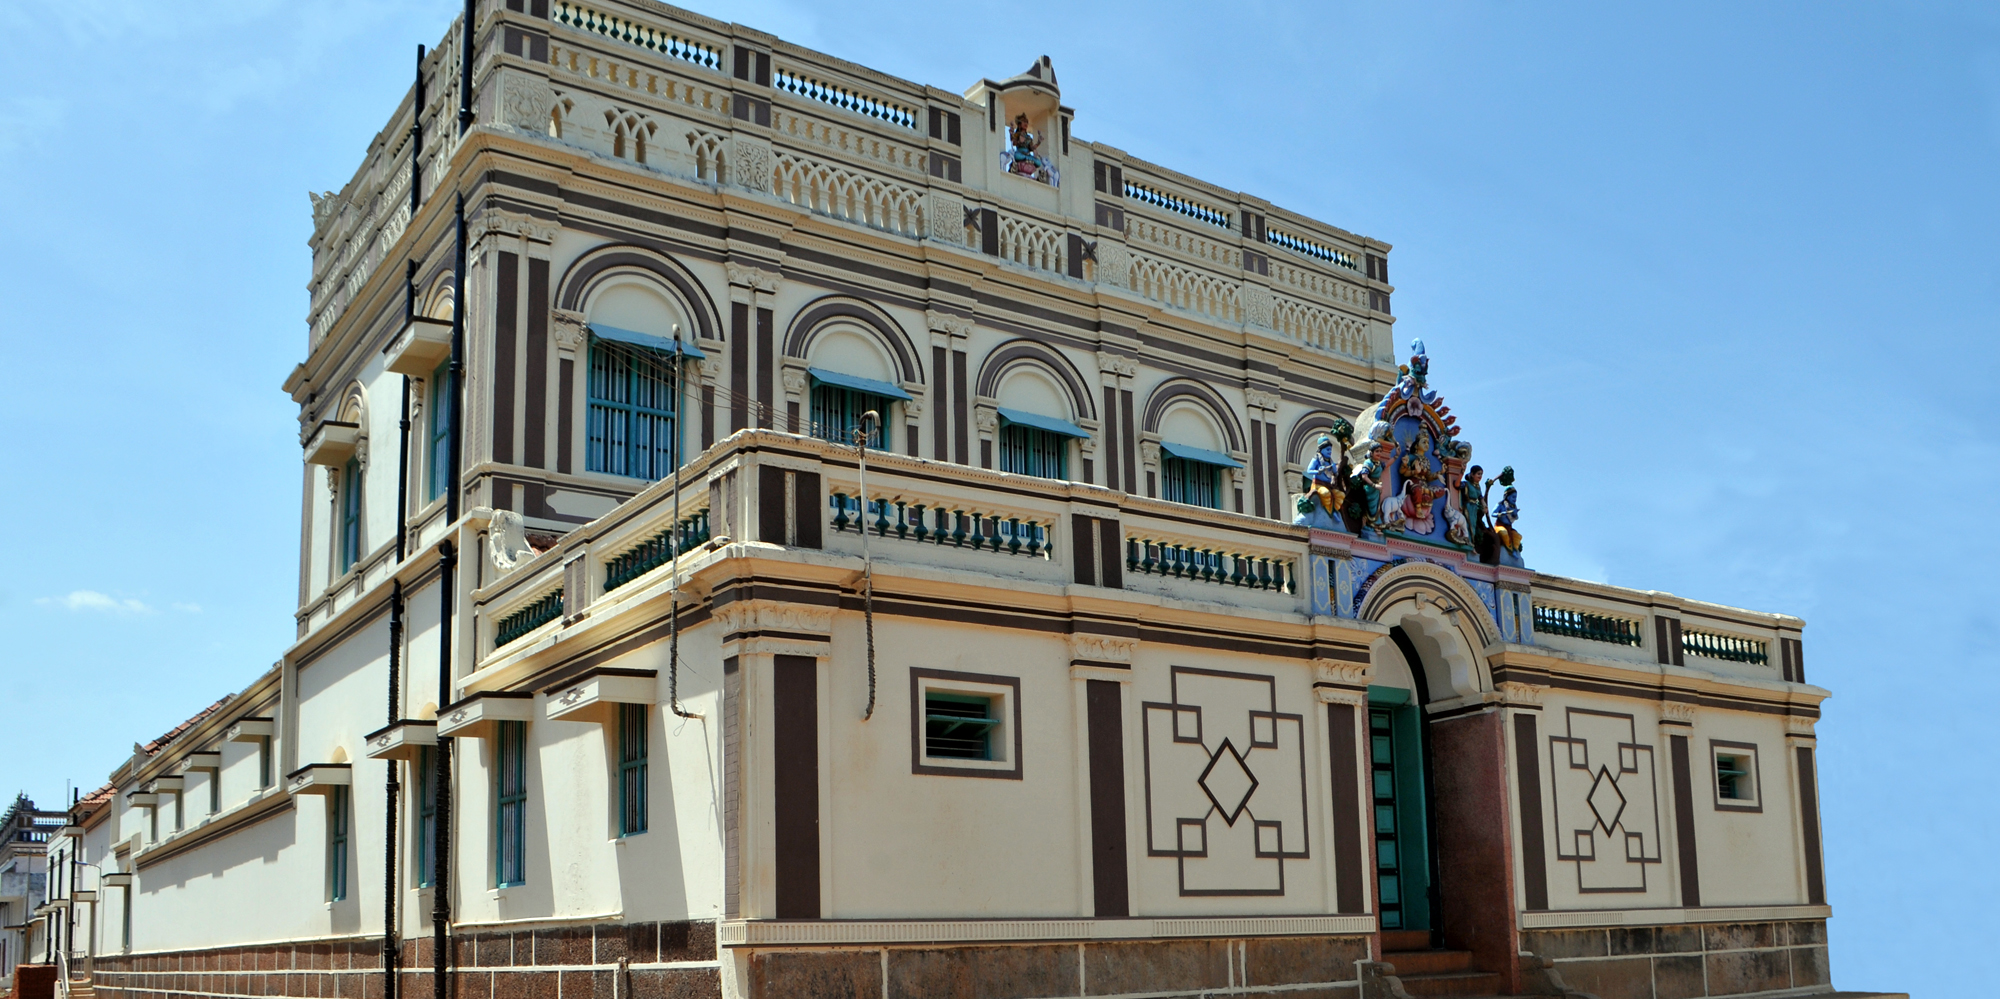 <strong>Chettinad - 4</strong> - Most Chettinad mansions have intricate sculptures at their entrances. Chettinad mansions are popularly dubbed as the �Wedding Cake Houses� of India.